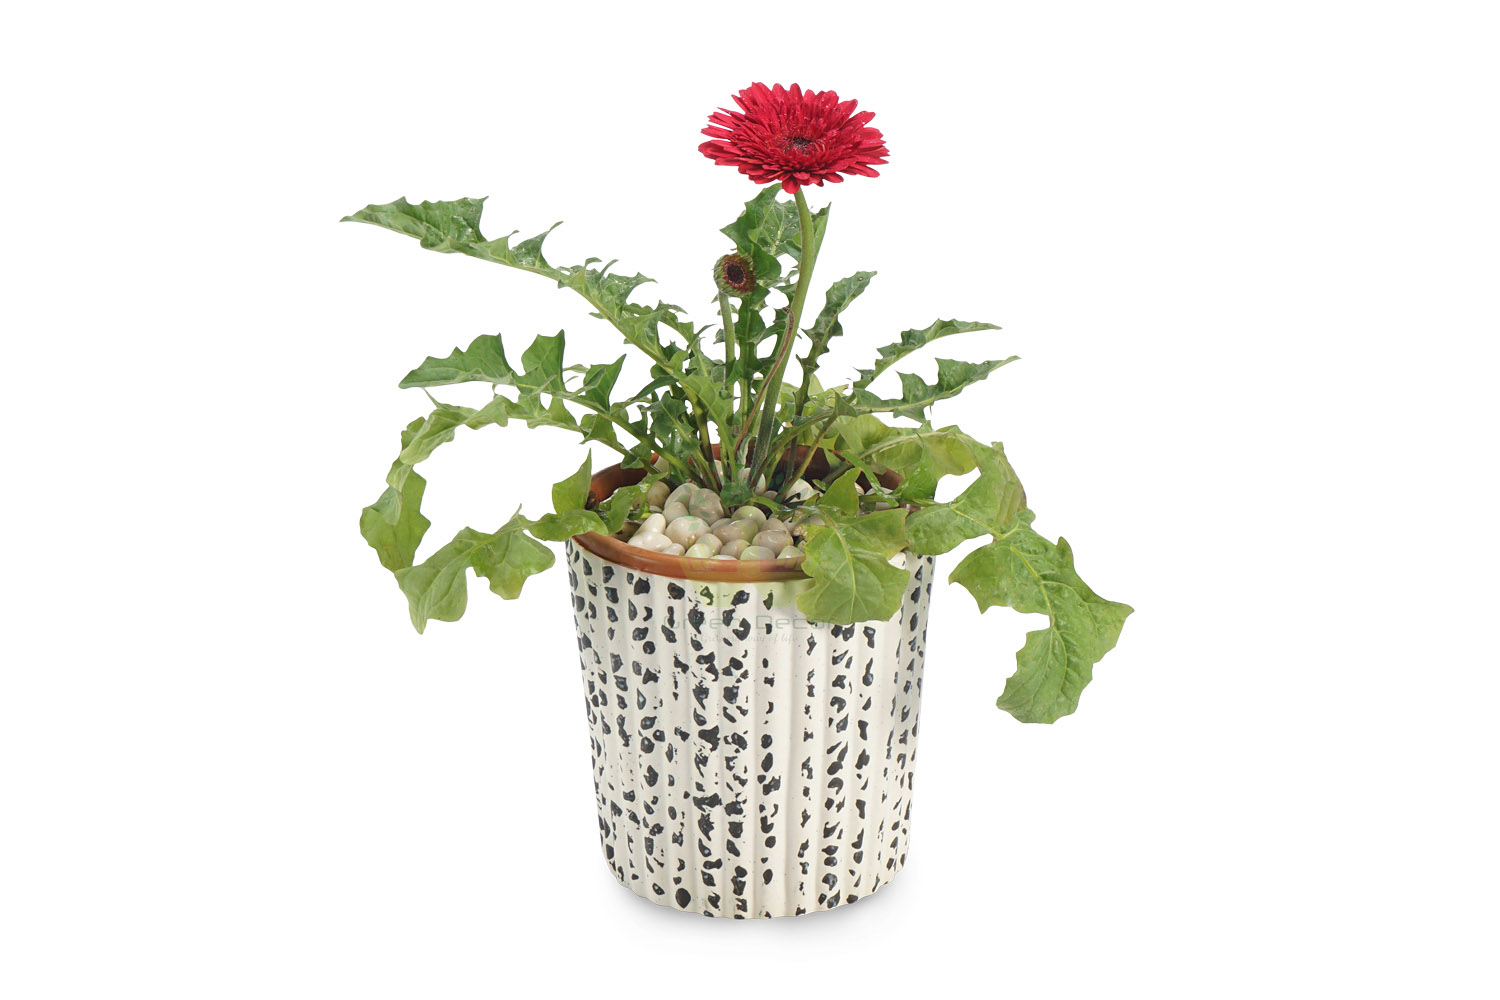 Buy Gerbera Pink Plant Front View, White Pots and Seeds in Delhi NCR by the best online nursery shop Greendecor.